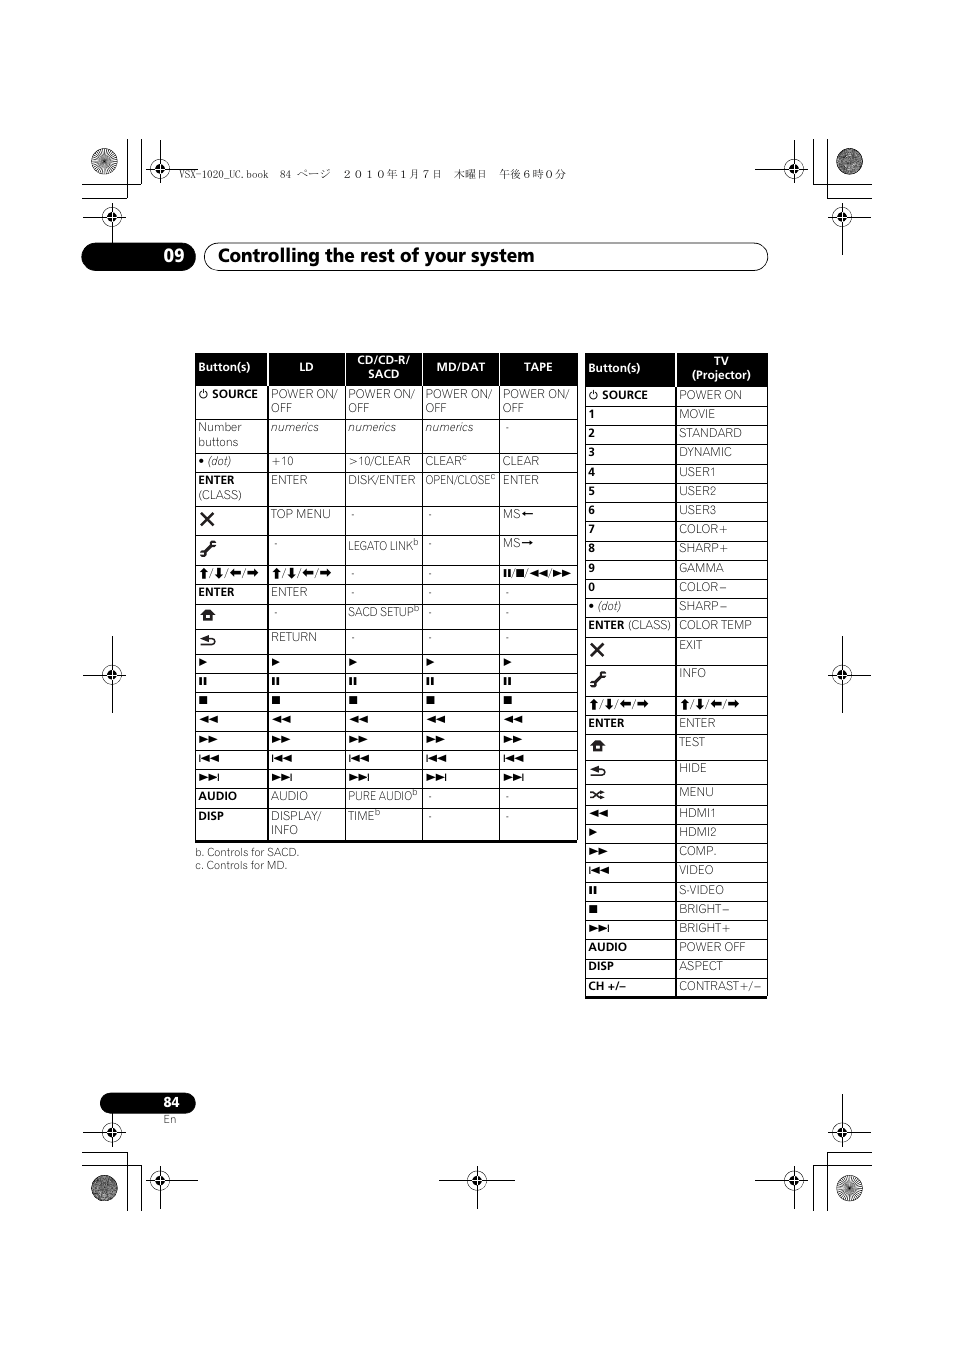 B. controls for sacd, C. controls for md, Controlling the